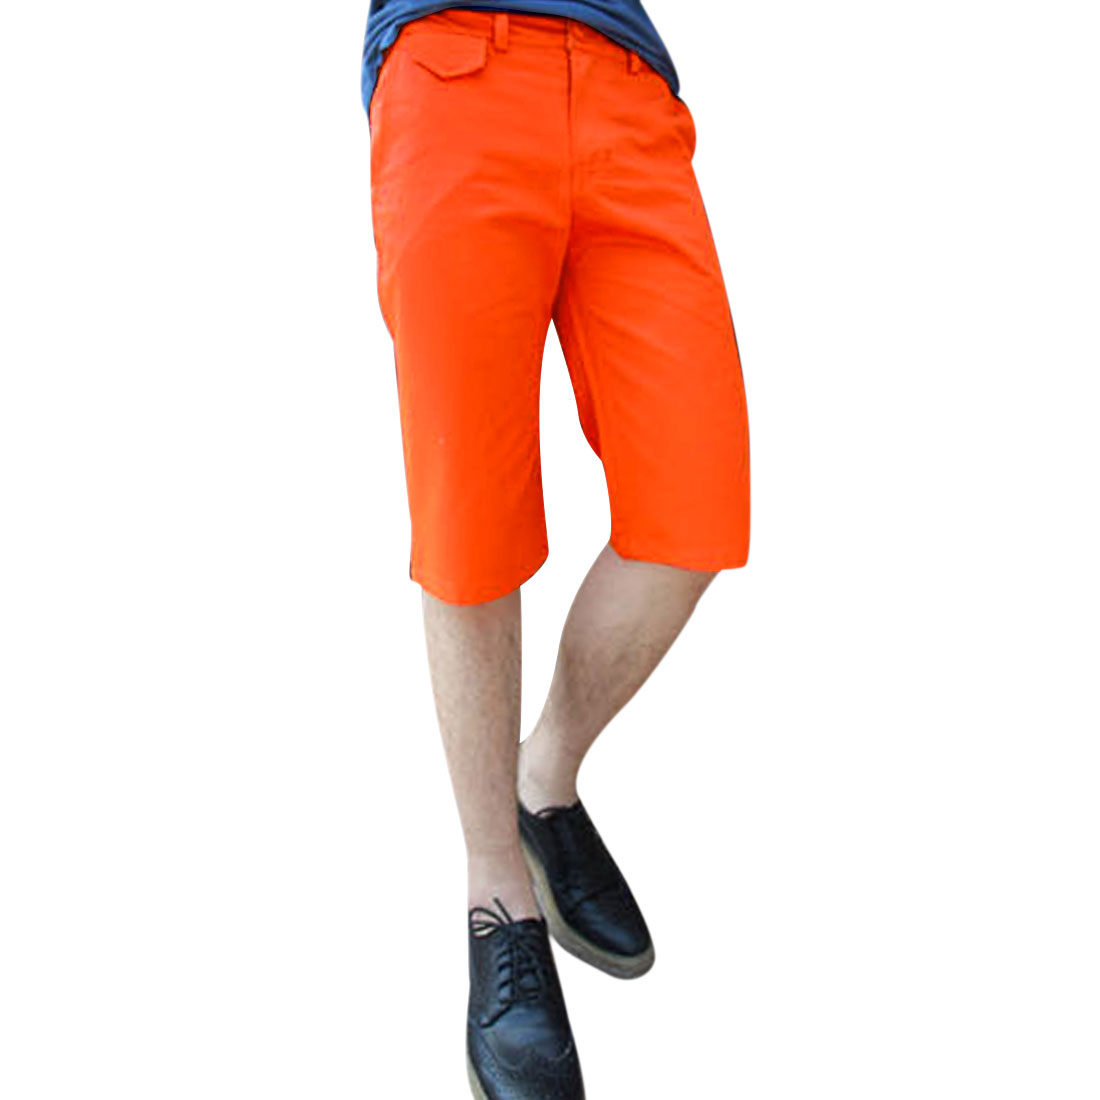 Man Hip Slant Pockets Belted Loop Fashion Shorts Trousers Orange W36